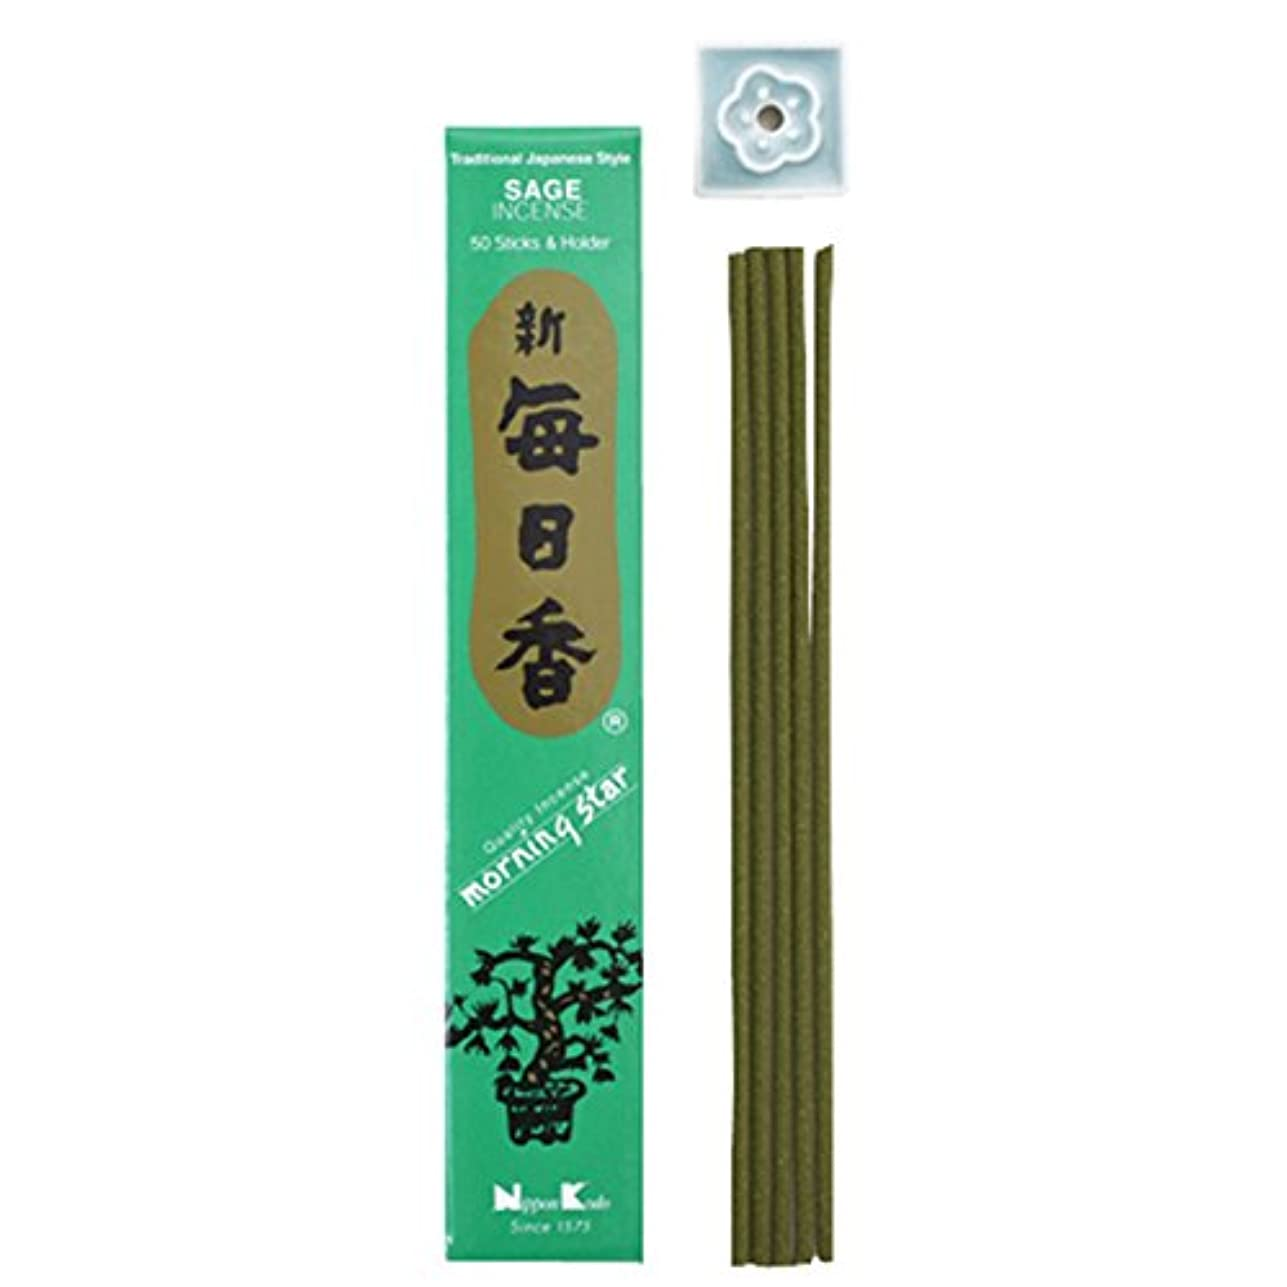 毎回邪悪な中でMorning Star Japanese Incense Sticks Sage 50 Sticks &ホルダー'